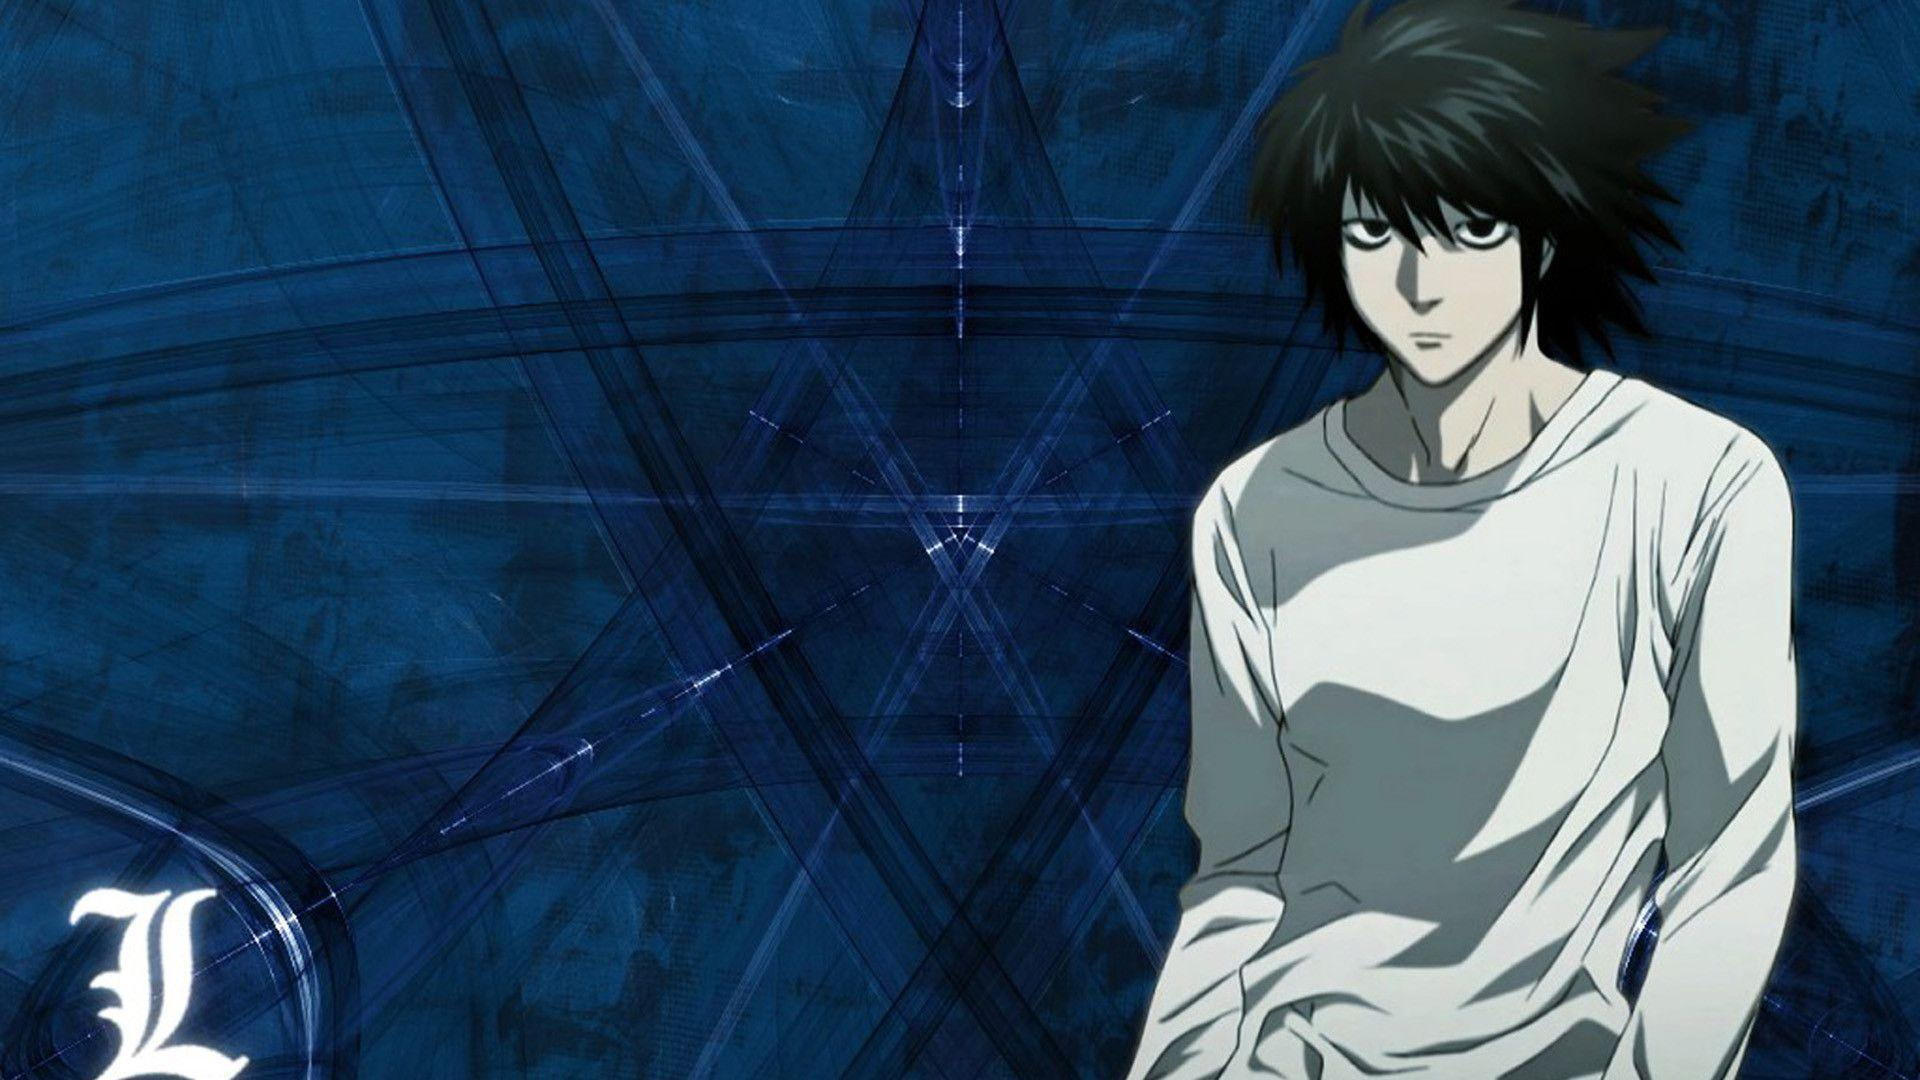 L Lawliet Wallpapers Top Free L Lawliet Backgrounds